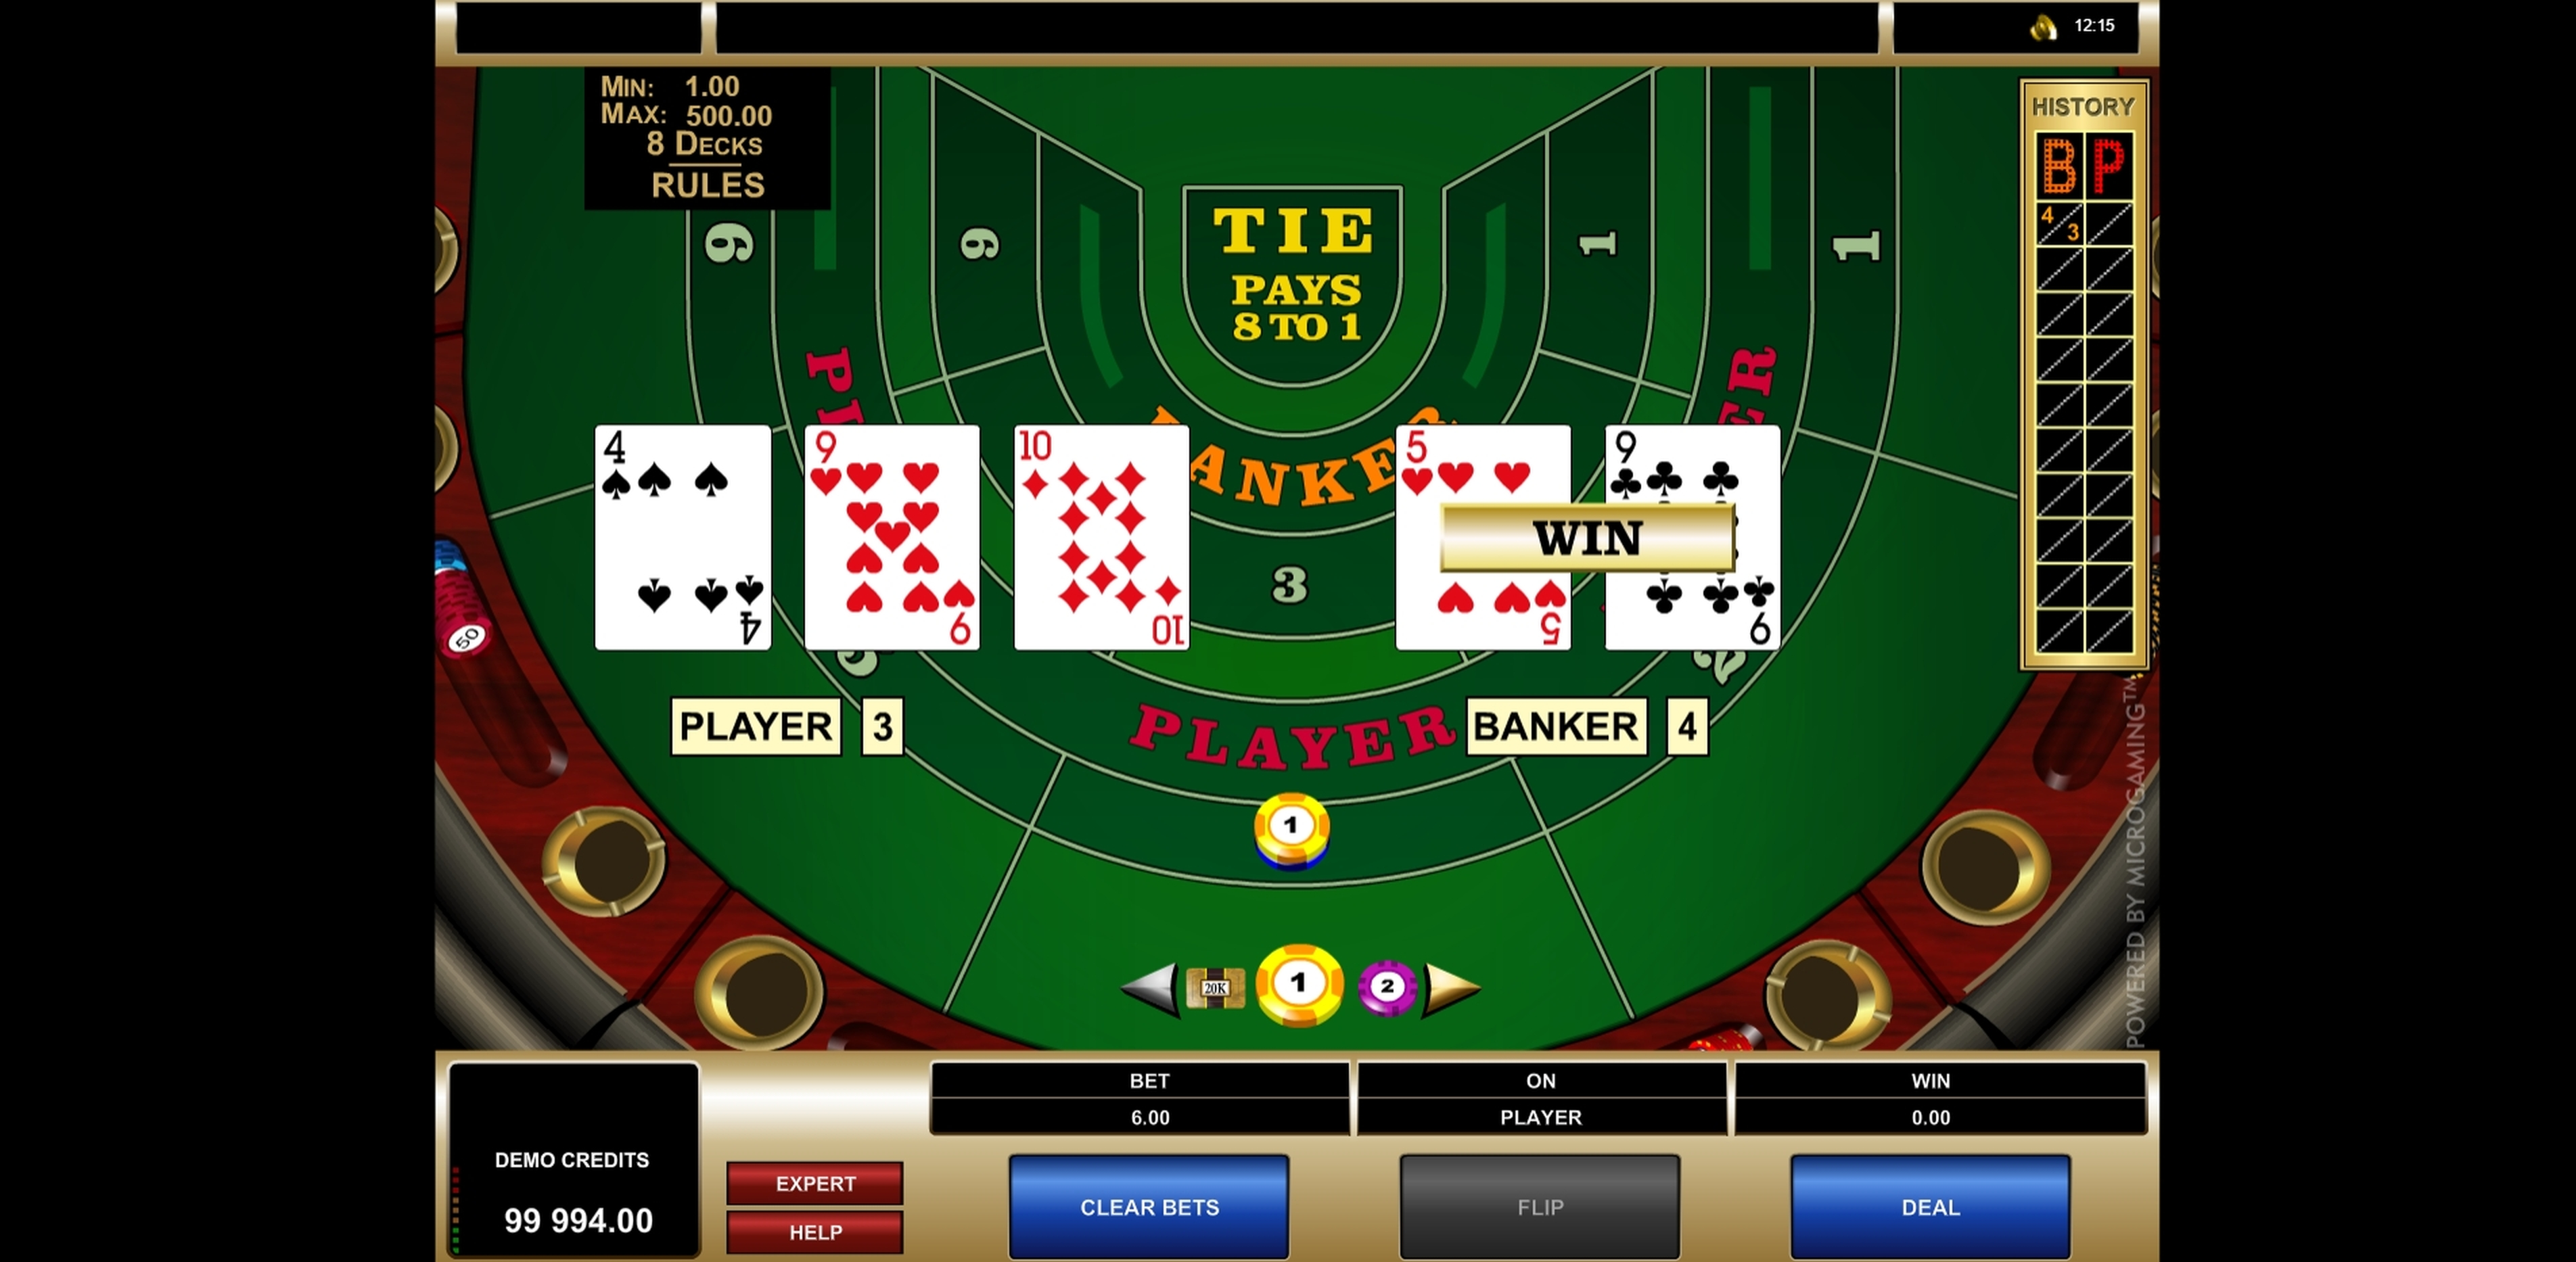 Win Money in High Limit Baccarat (Microgaming) Free Slot Game by Microgaming